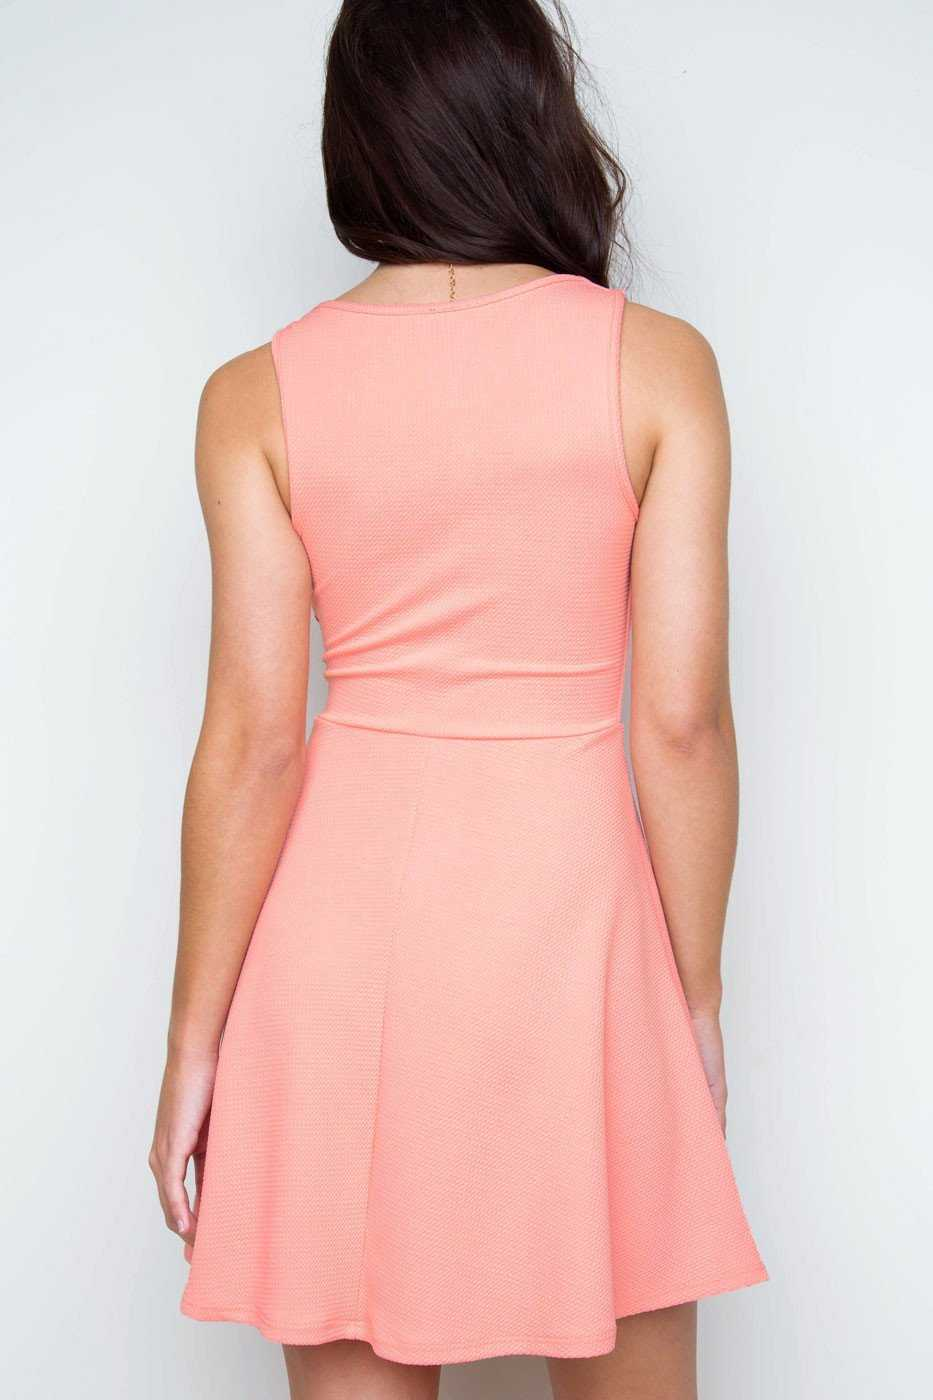 Dresses - Juliana Dress - Blush